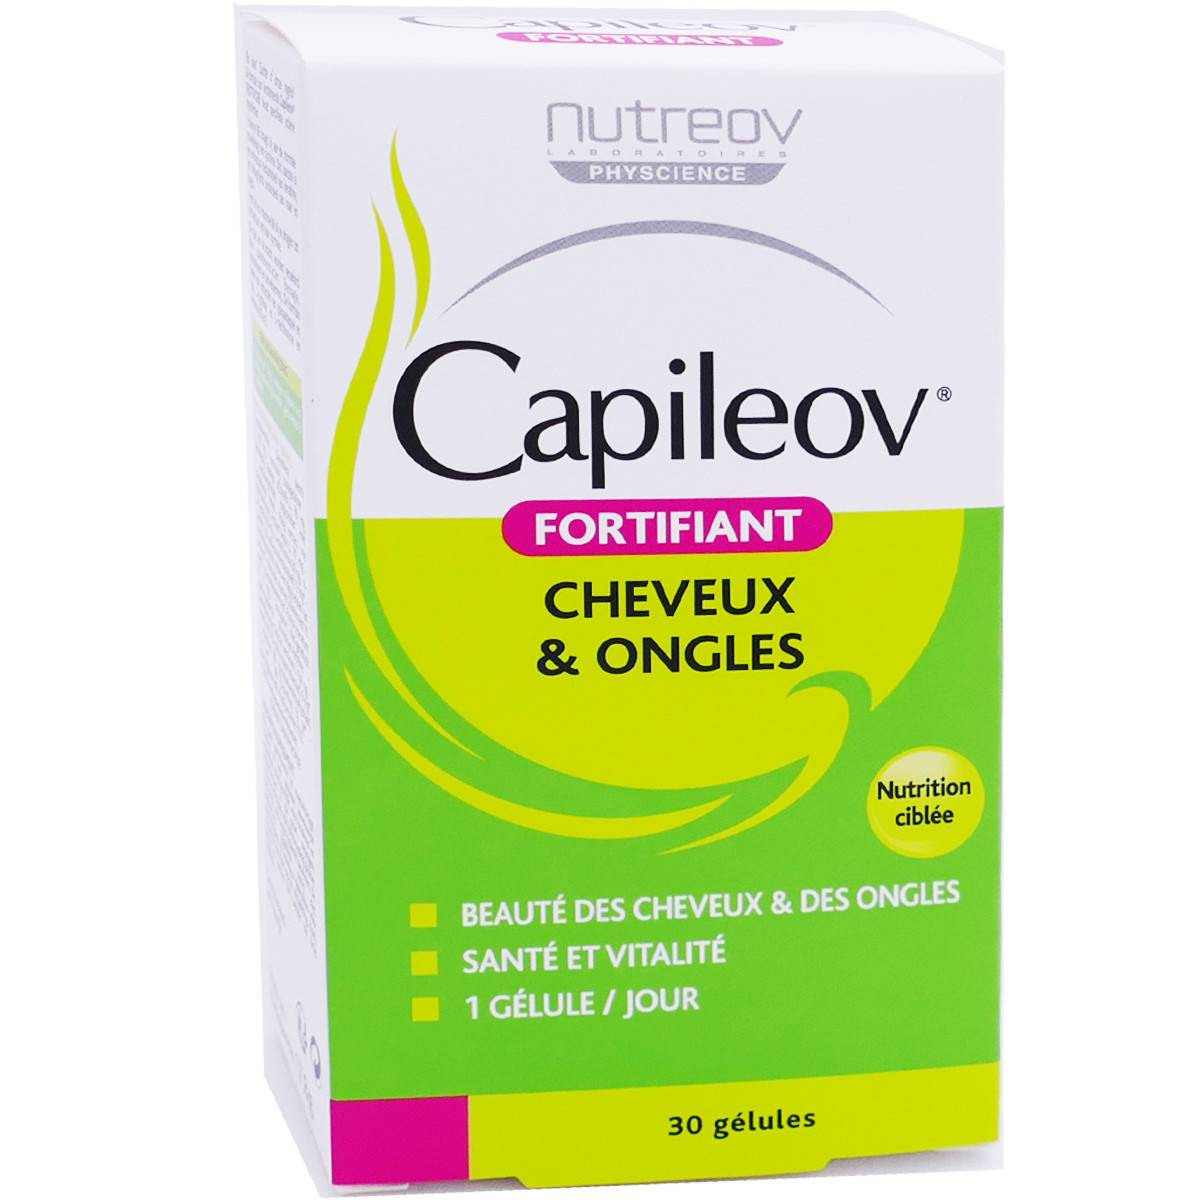 PHYSCIENCE Nutreov capileov fortifiant cheveux ongles 30gelules